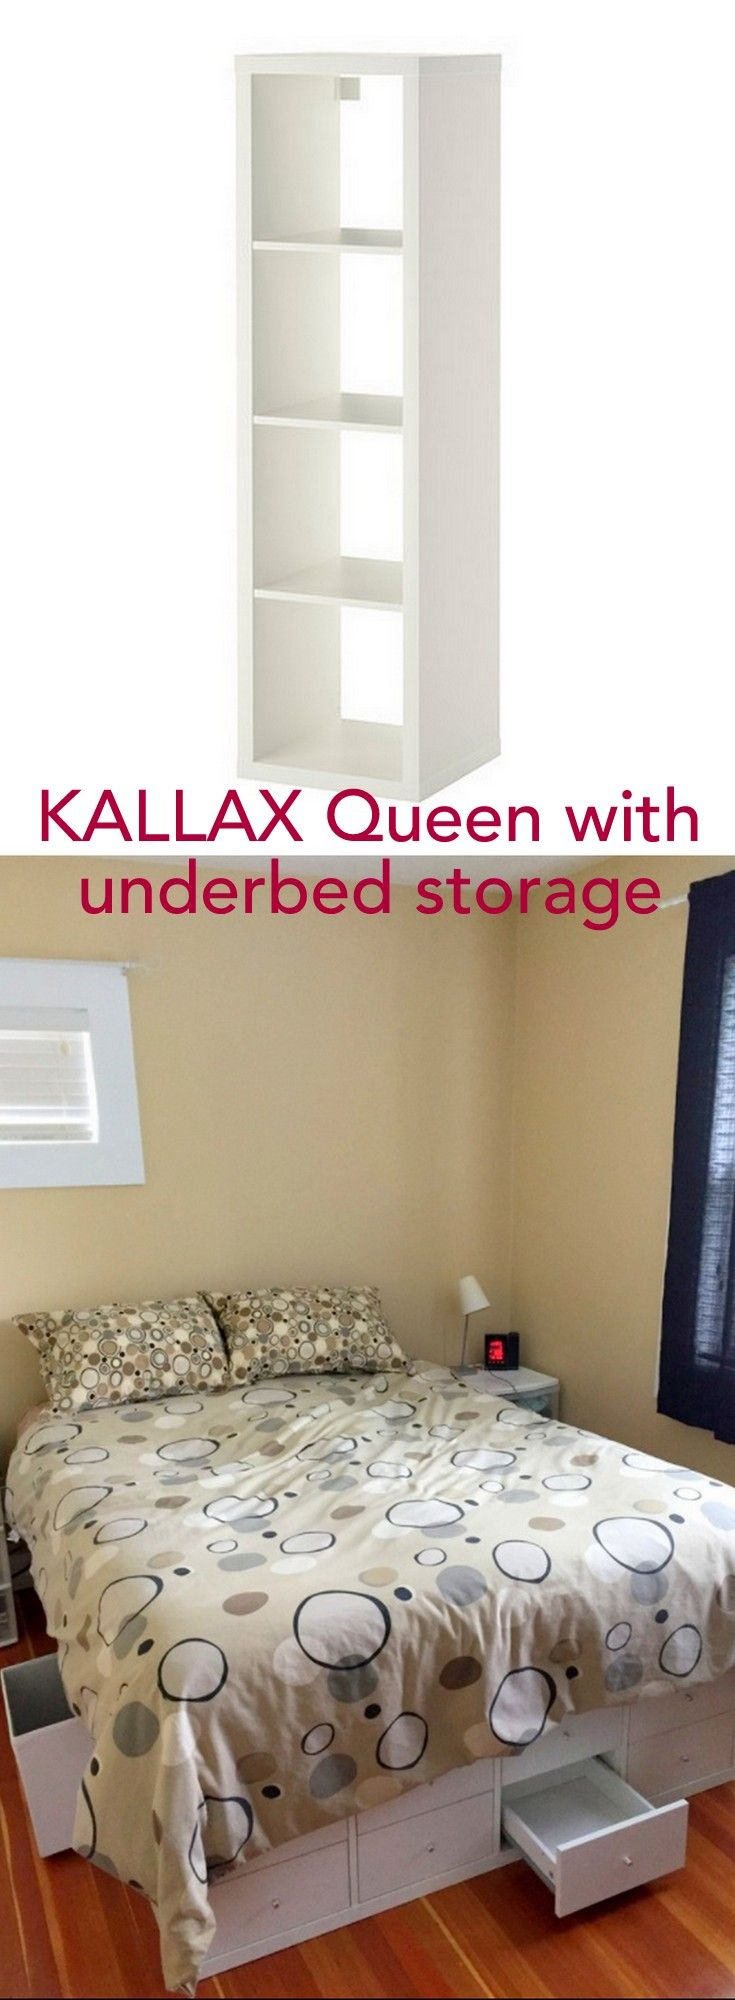 12 cubbies for storage under the bed. Yay! http://www.ikeahackers.net/2017/05/ikea-kallax-queen-storage-bed.html